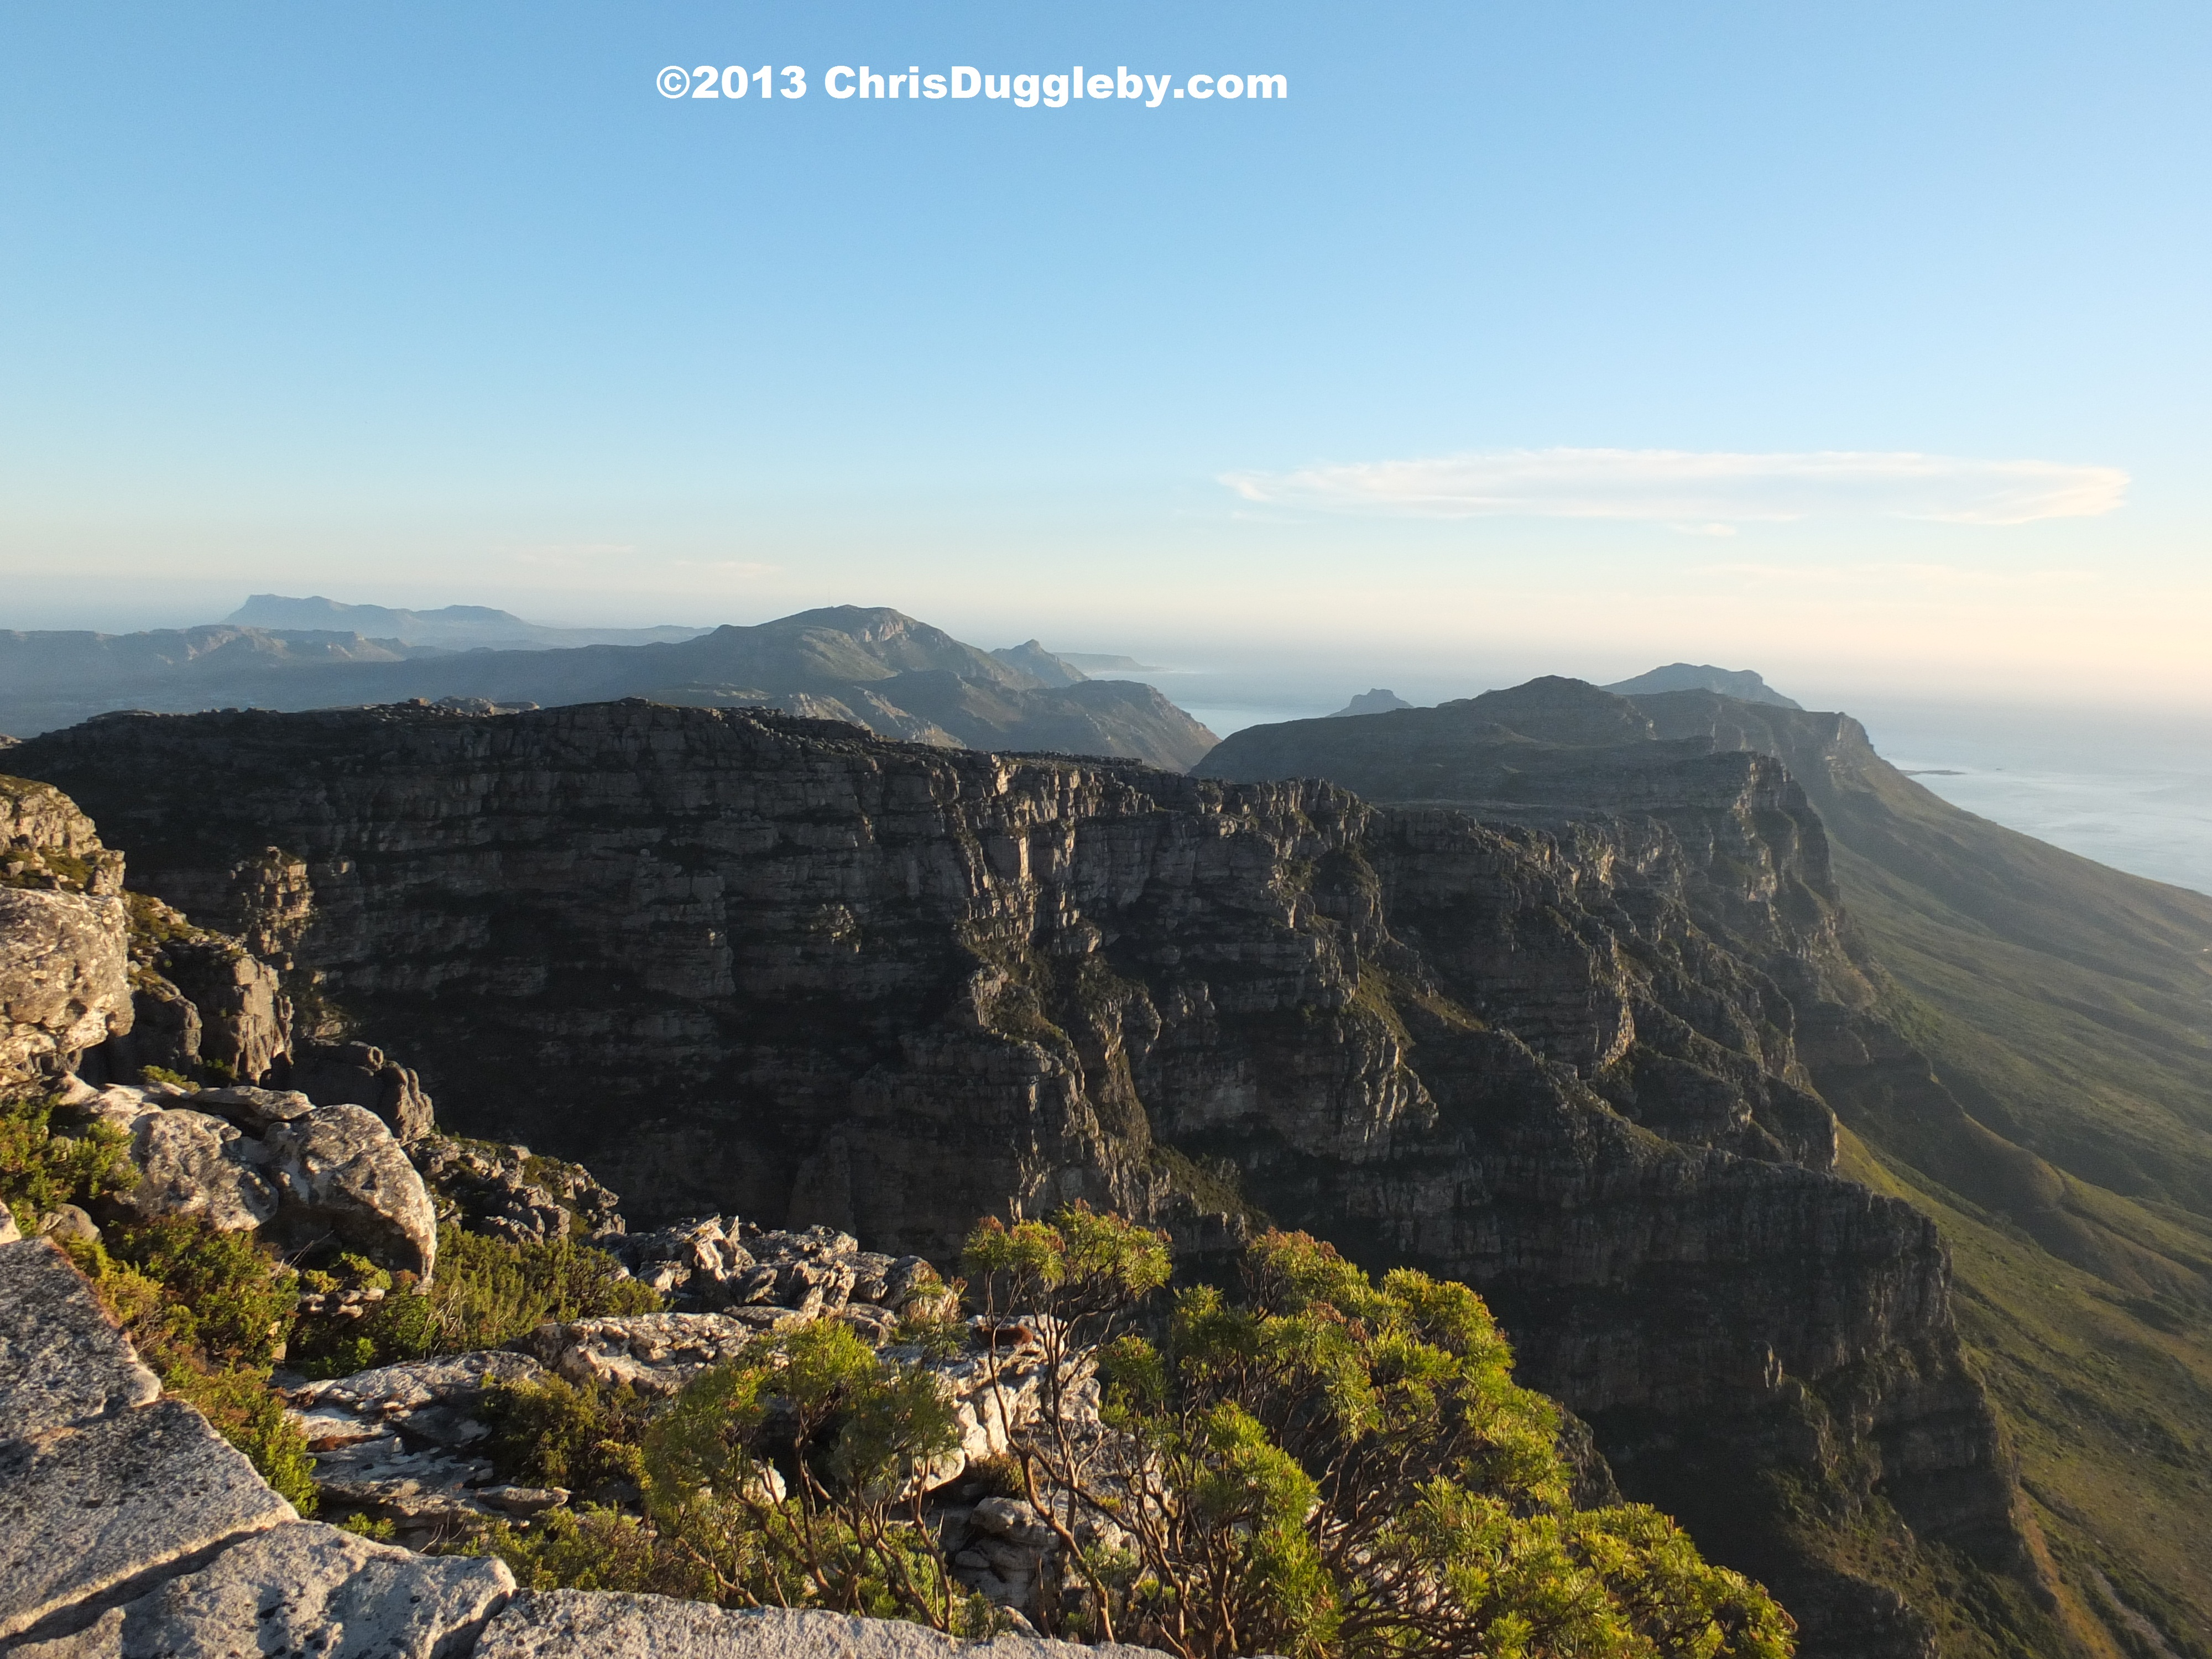 Best Pushchairs Ever Sunset From The Top Of Table Mountain Following An